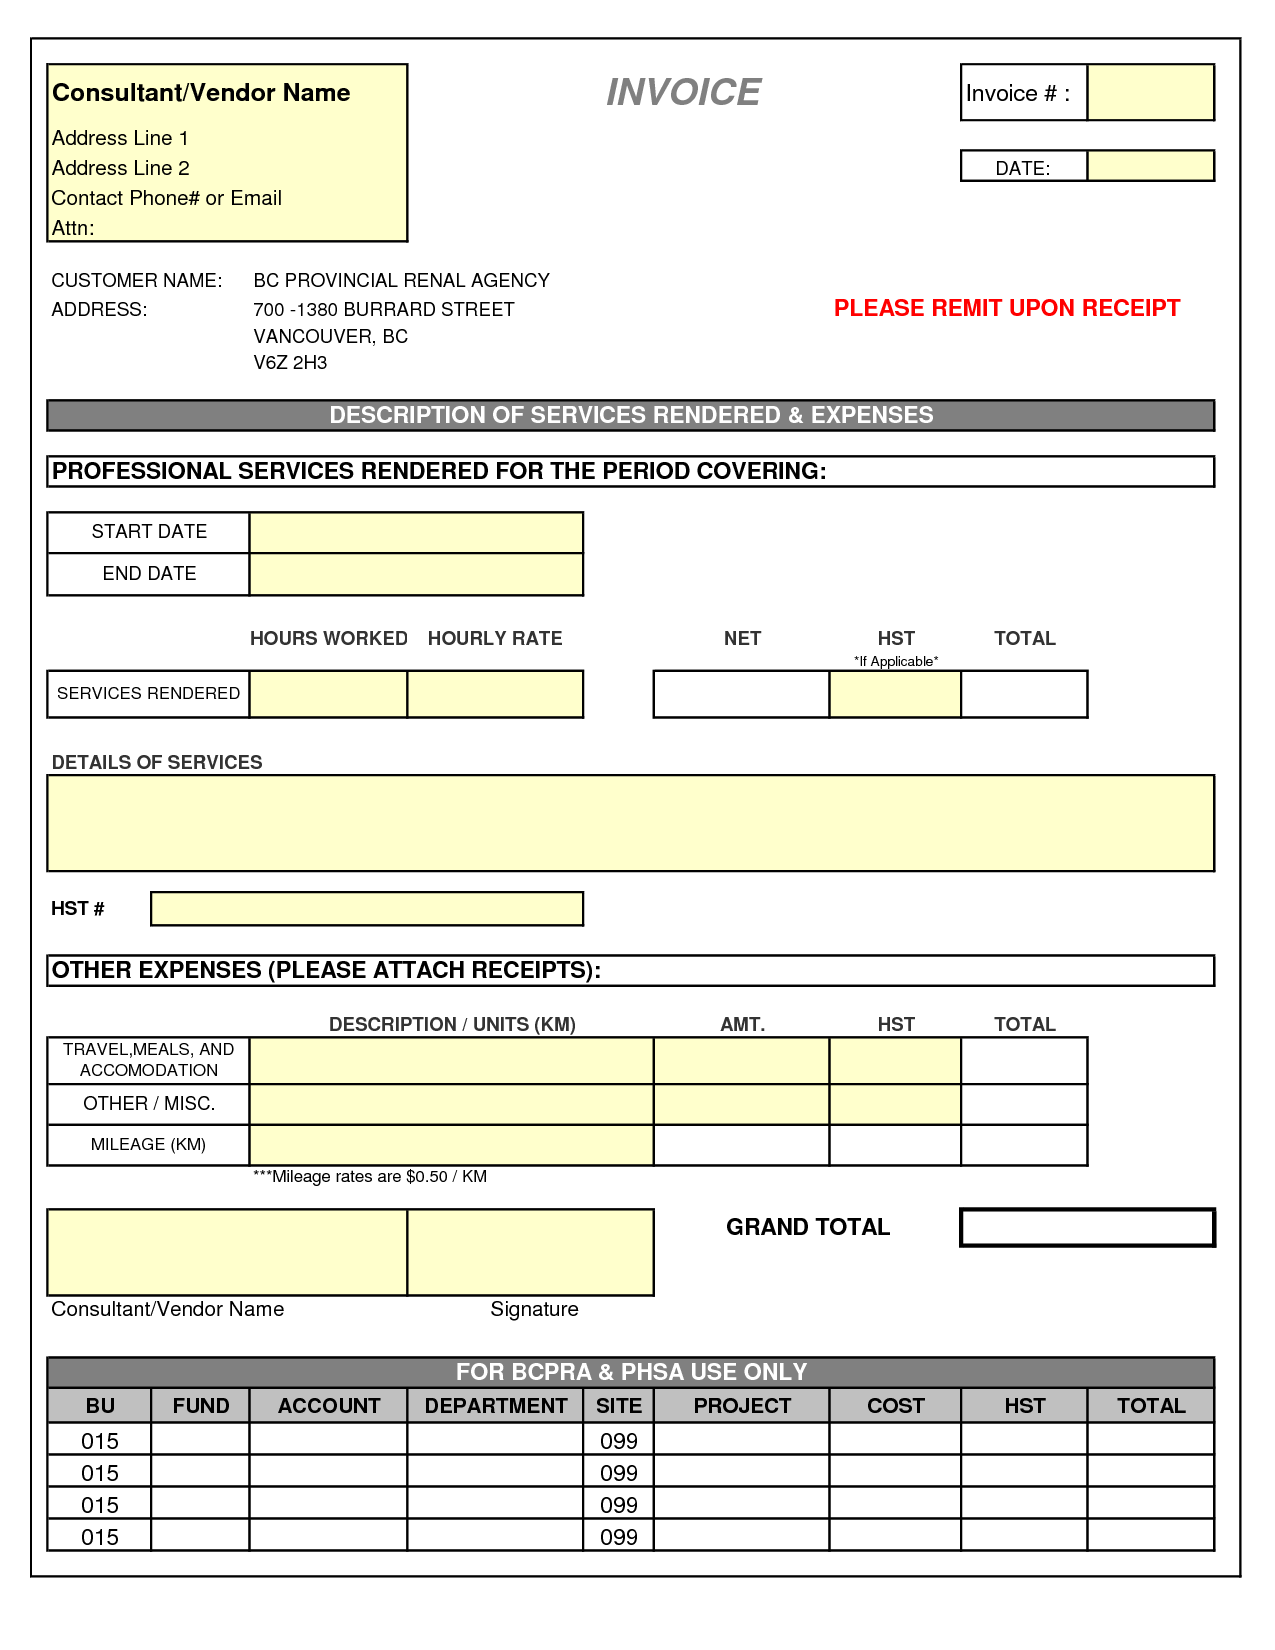 Australian Tax Invoice Template Free Pdf Download Retainer Invoice Sample  Rabitahnet Copy Of An Invoice Template Pdf with What Is Cash Receipt Pdf Consulting Services Invoice Template  Template Invoice Examples Invoice Account Word